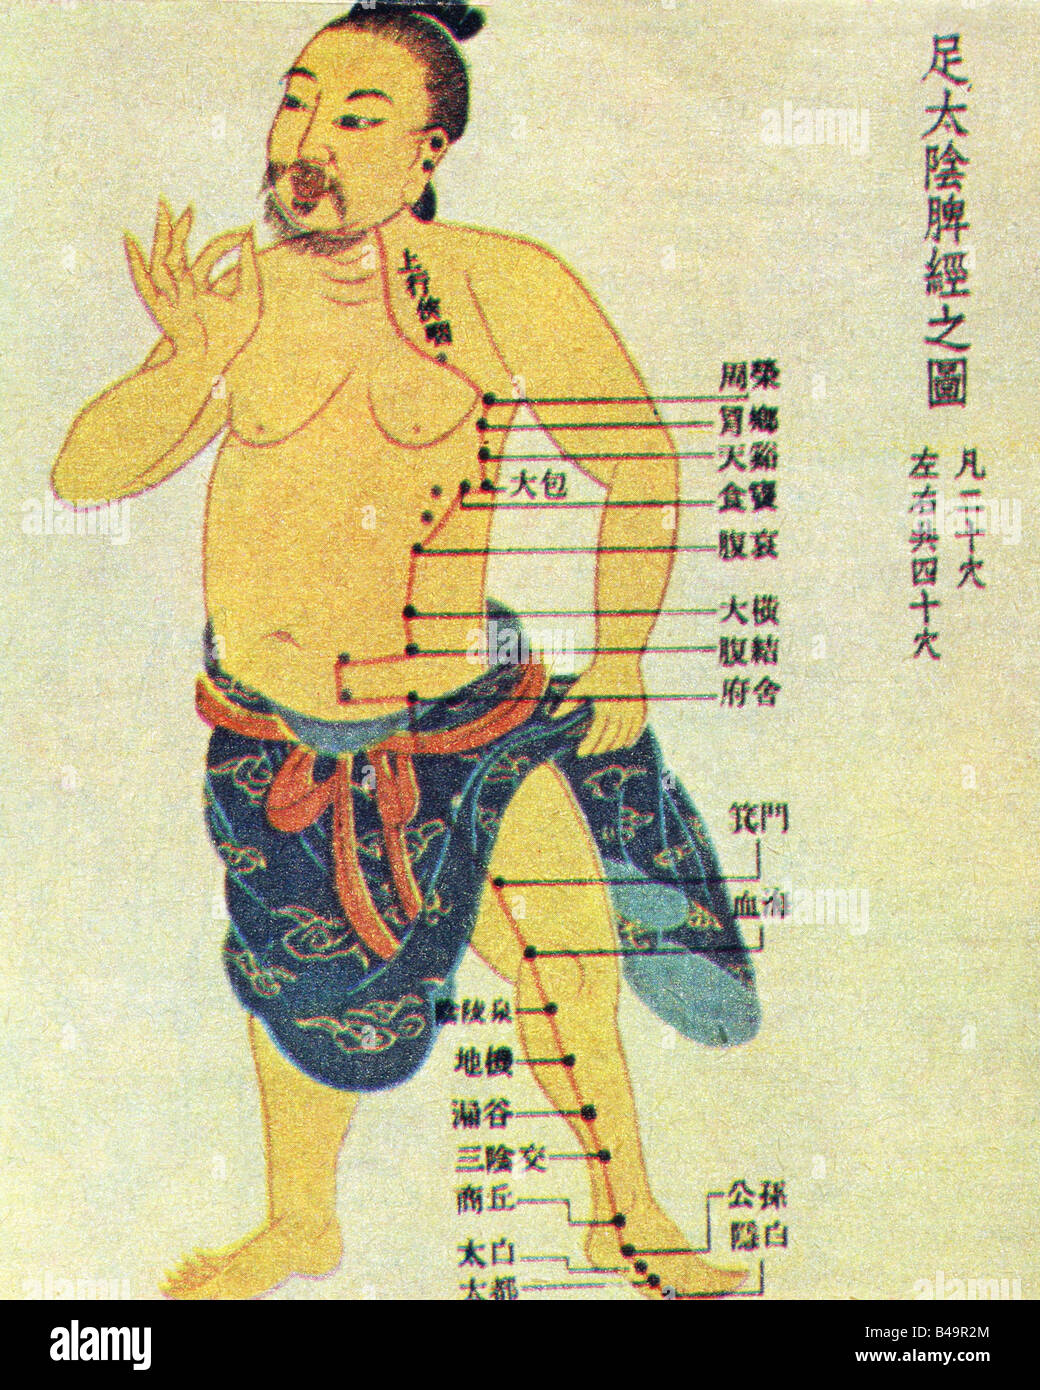 medicine, Chinese acupuncture, card, Ming Dynasty (1369 - 1644), kidney  meridian, print, historic, historical, China, Asia, medicinal, people, ...